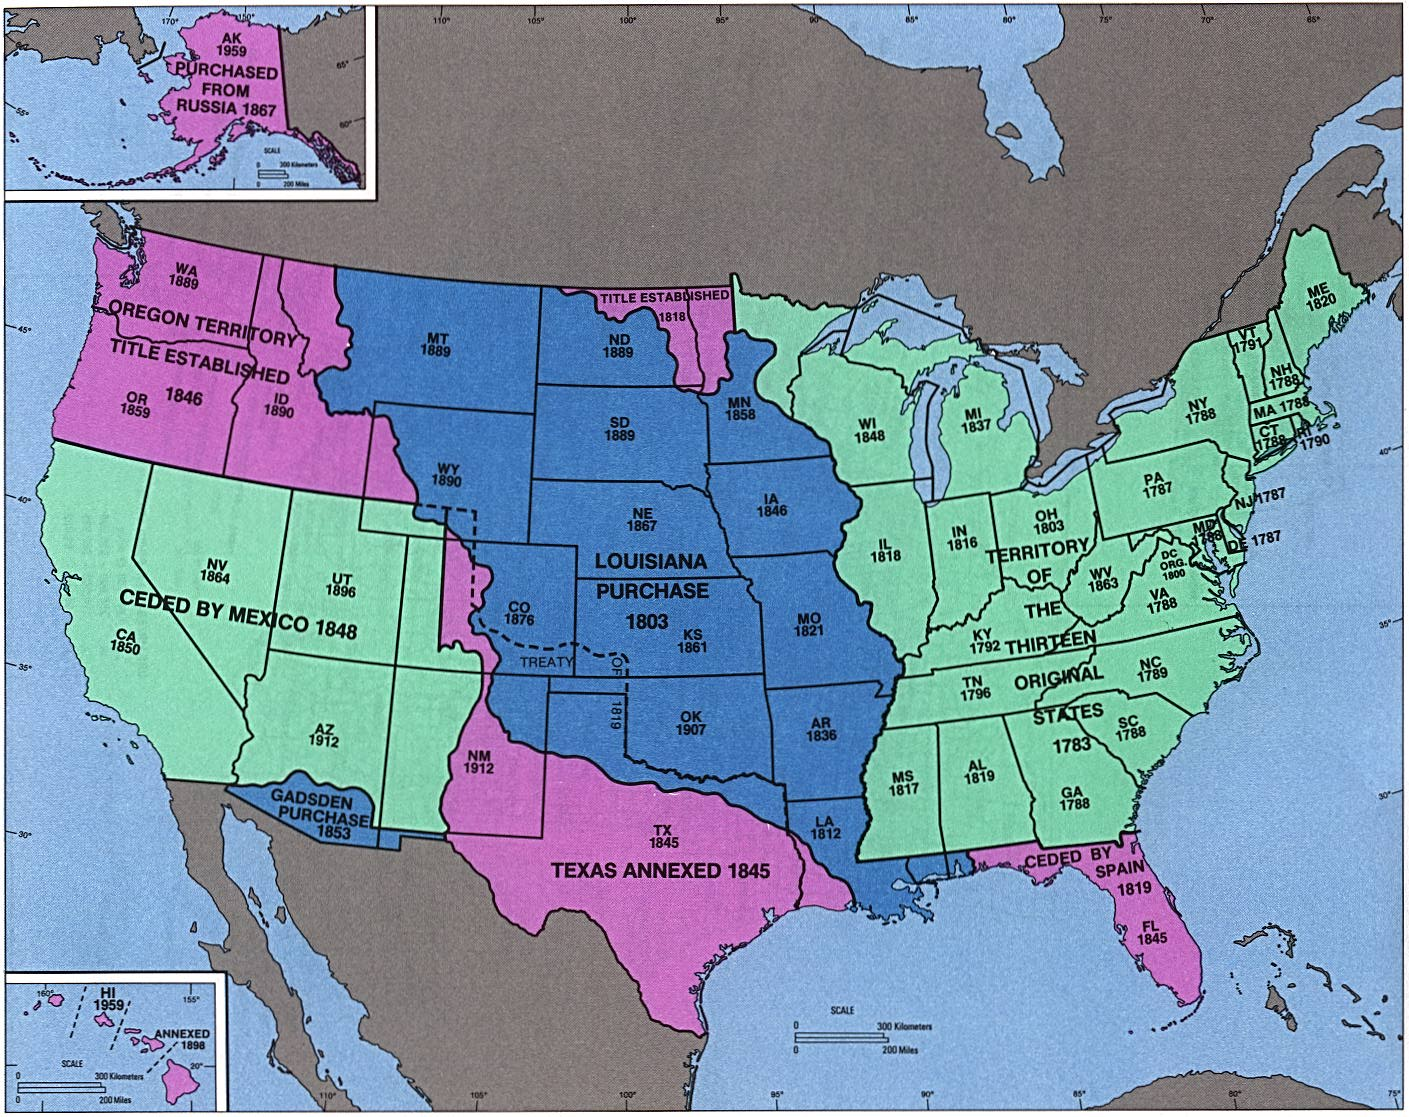 Start studying us states map. General State Information Government Resources States Uofl Libraries At University Of Louisville